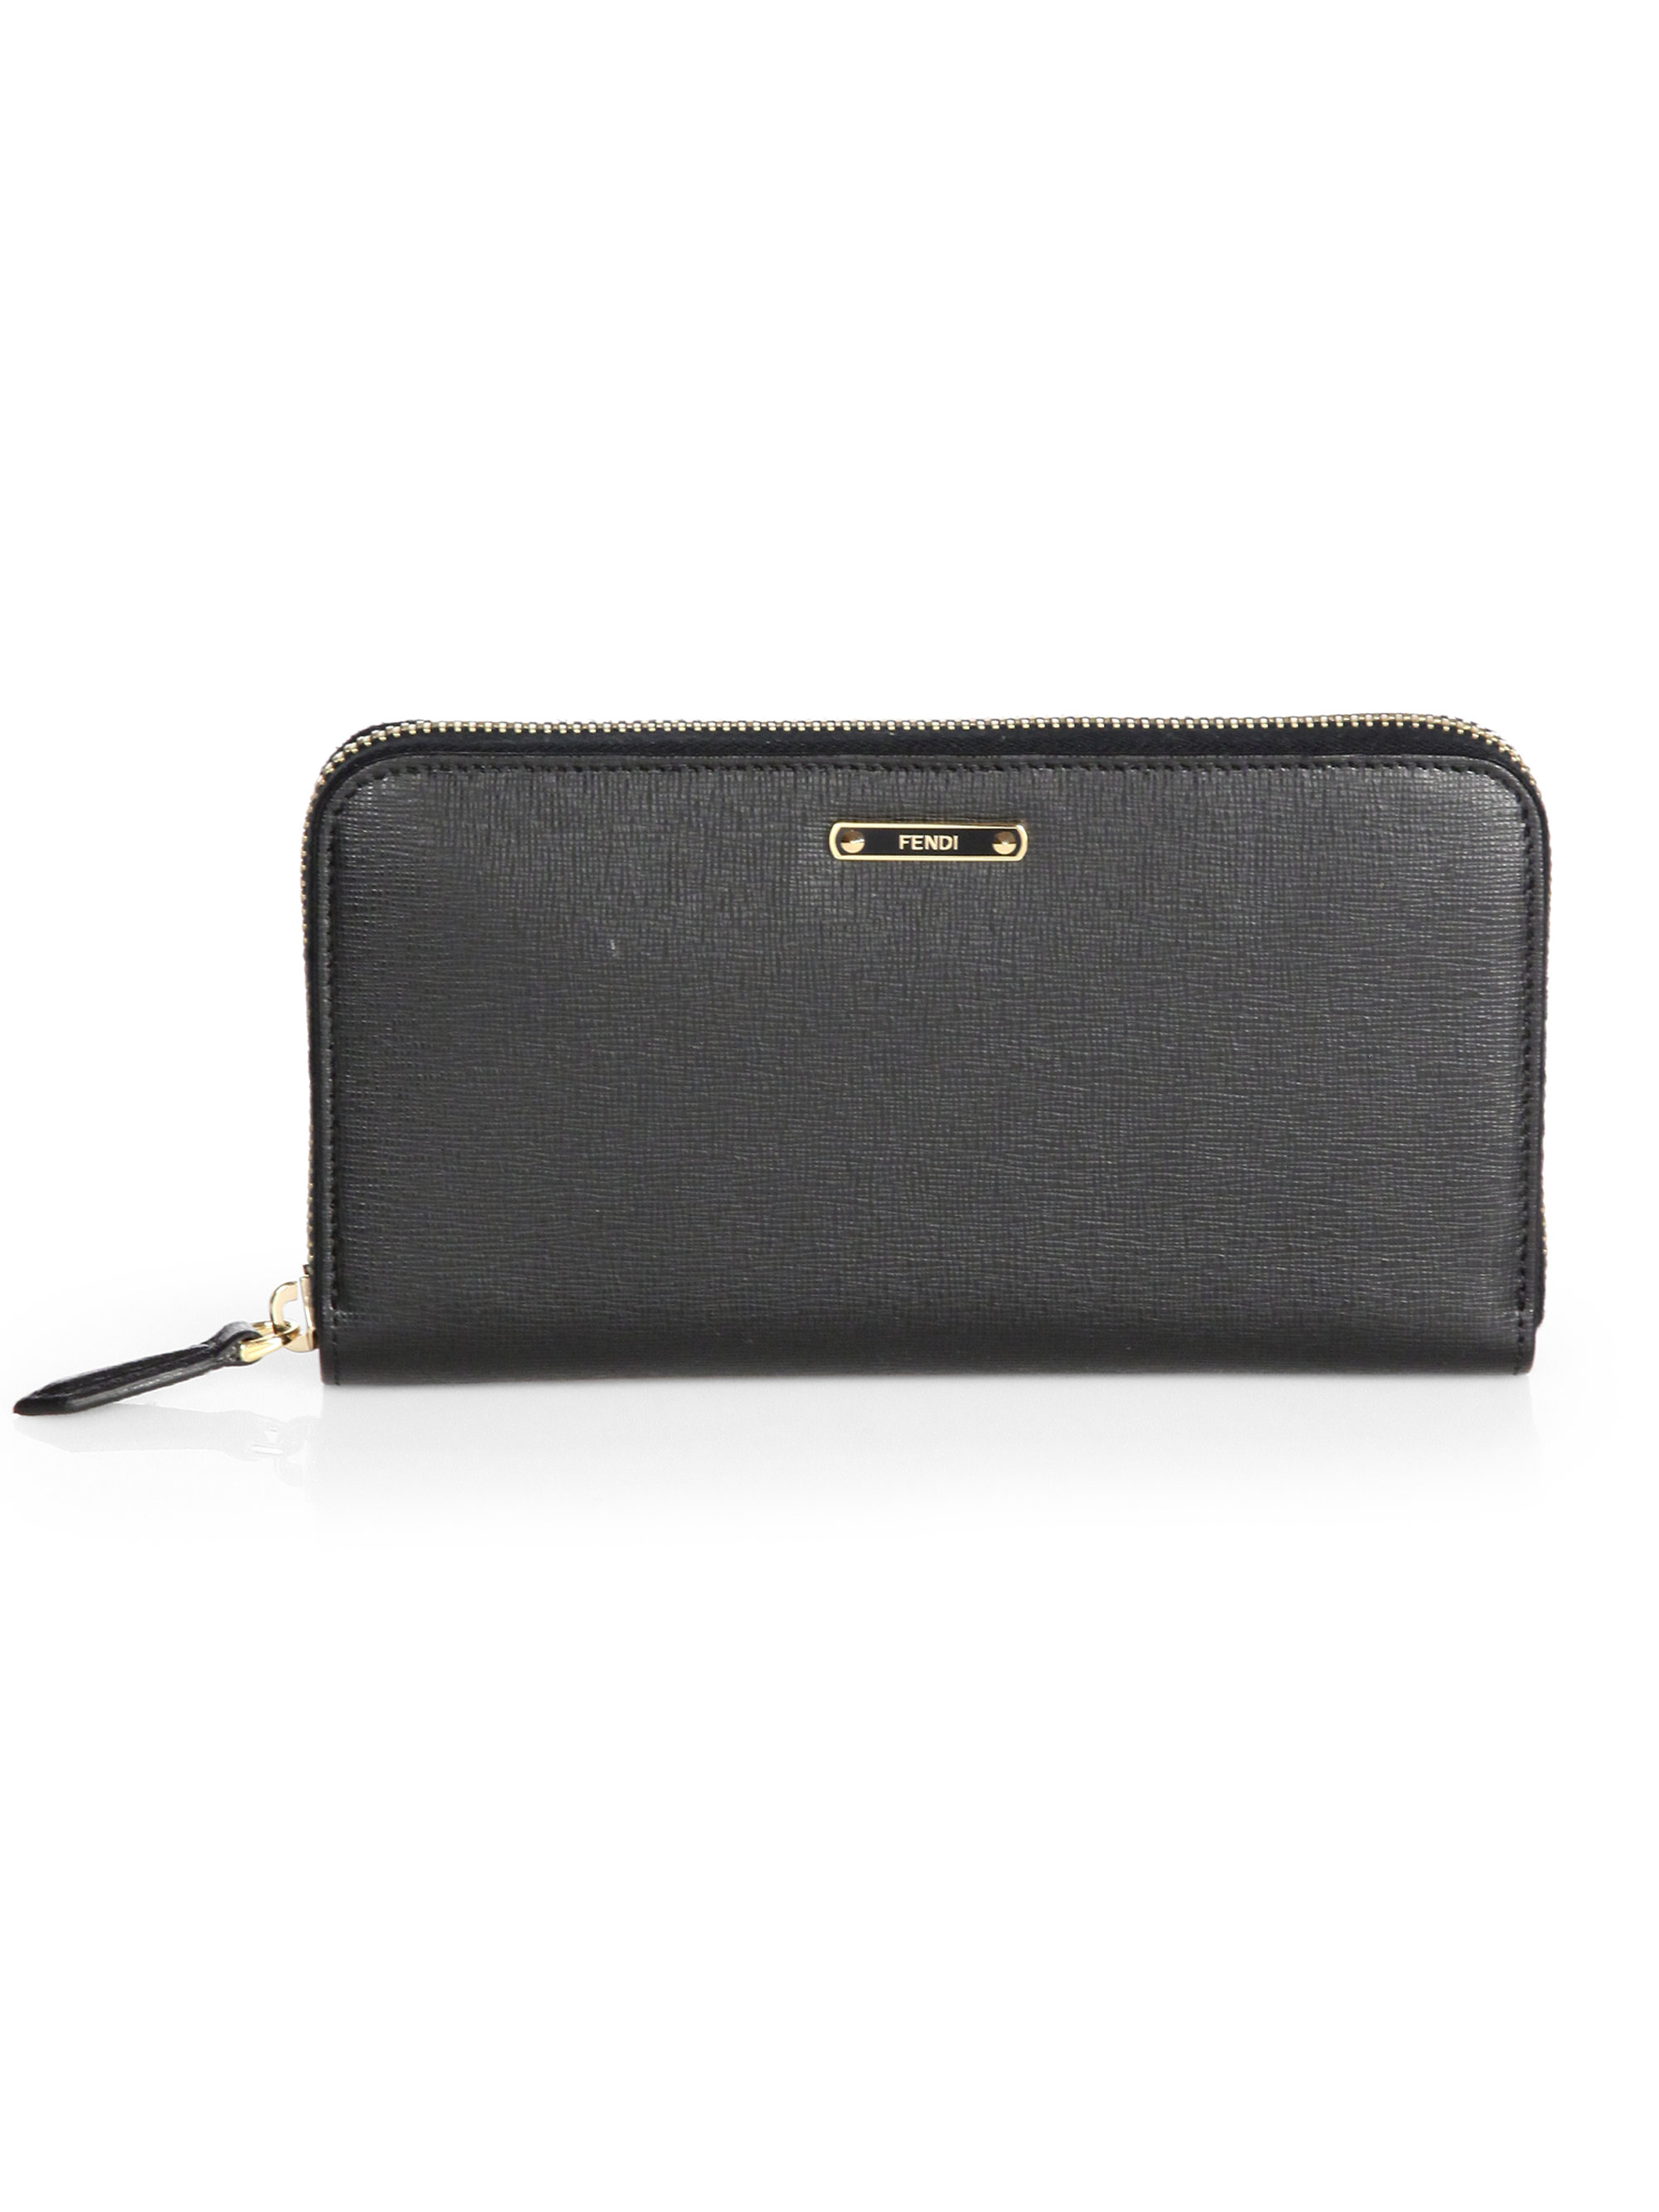 Fendi Zip around leather wallet qvlymXM0